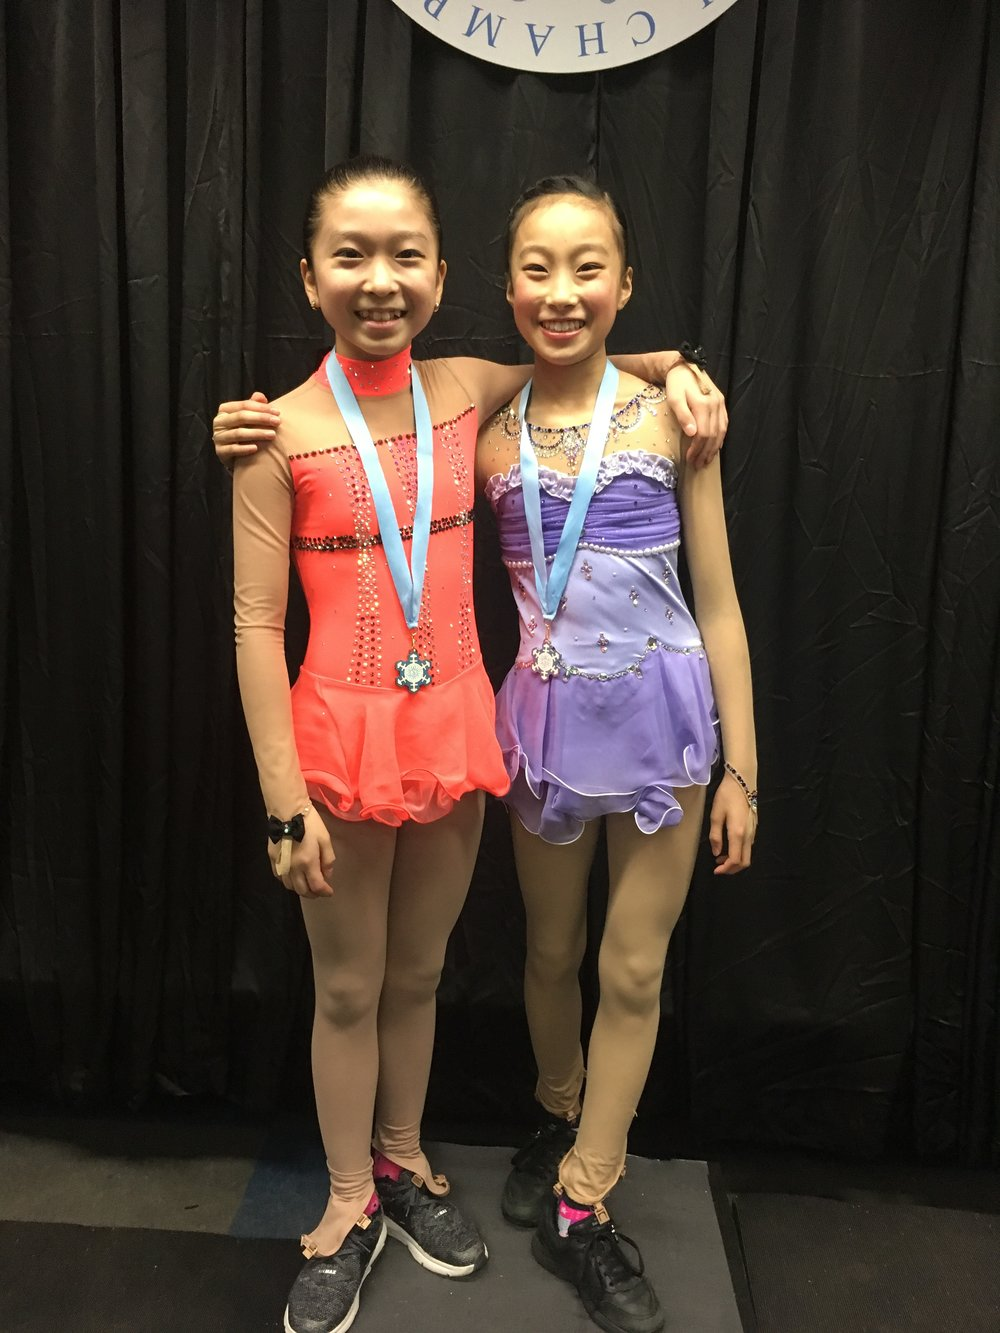 Luka & Yena after their short program performances (Luka 2nd, Yena 3rd)